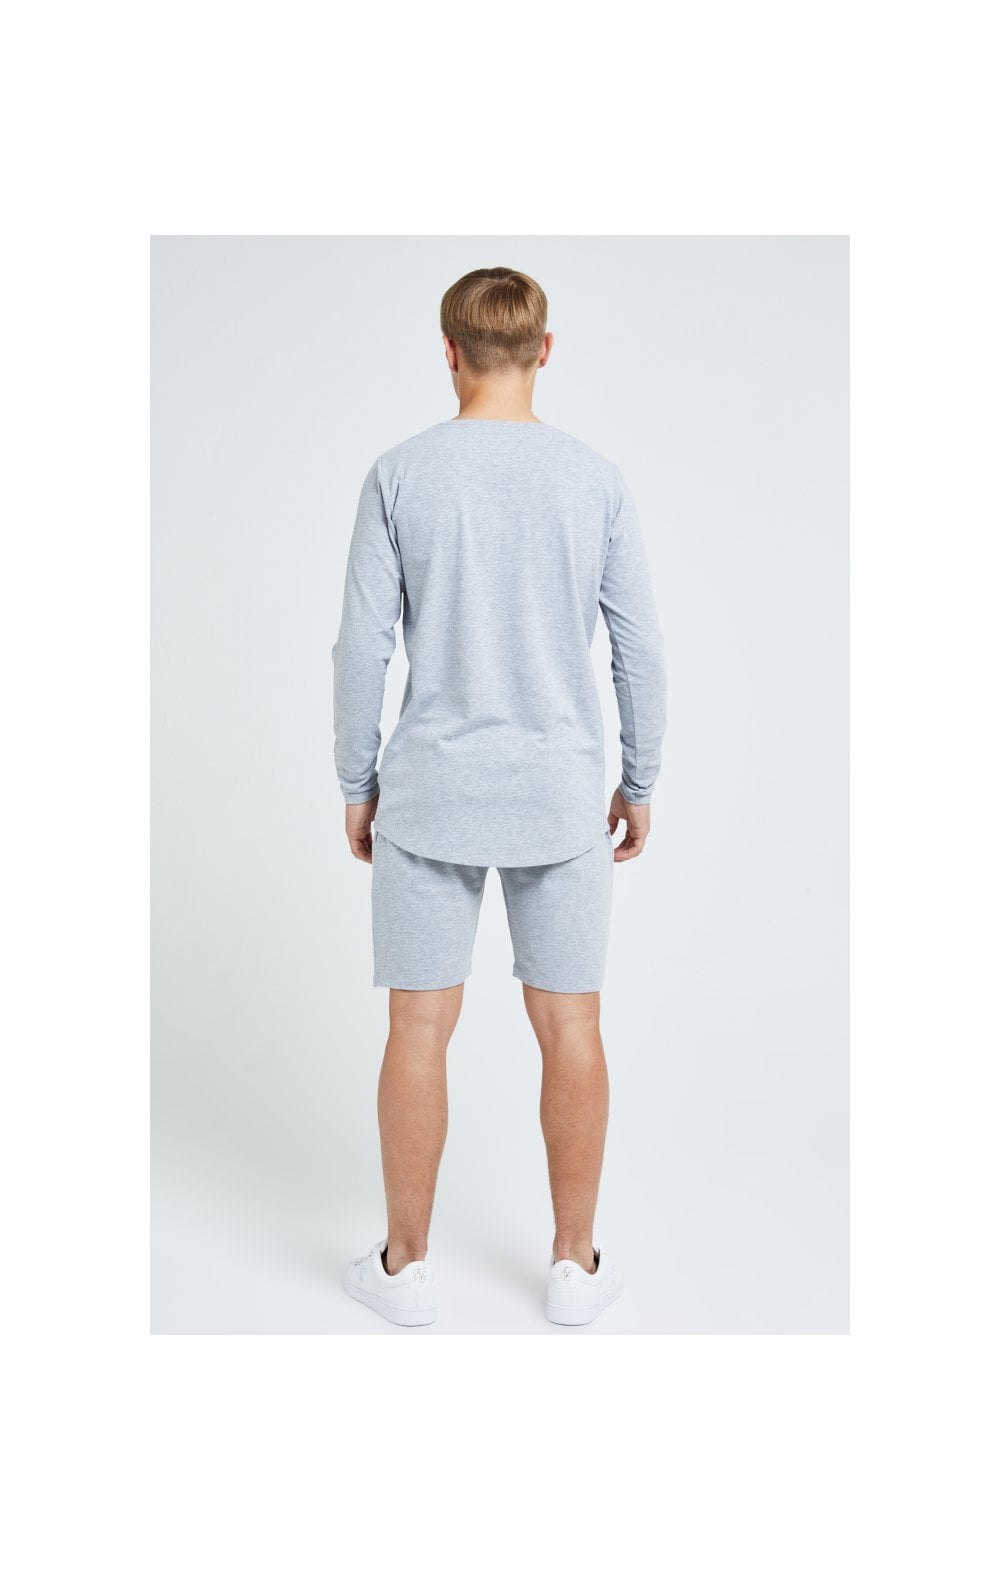 Illusive London L/S Core Tee - Grey Marl (6)